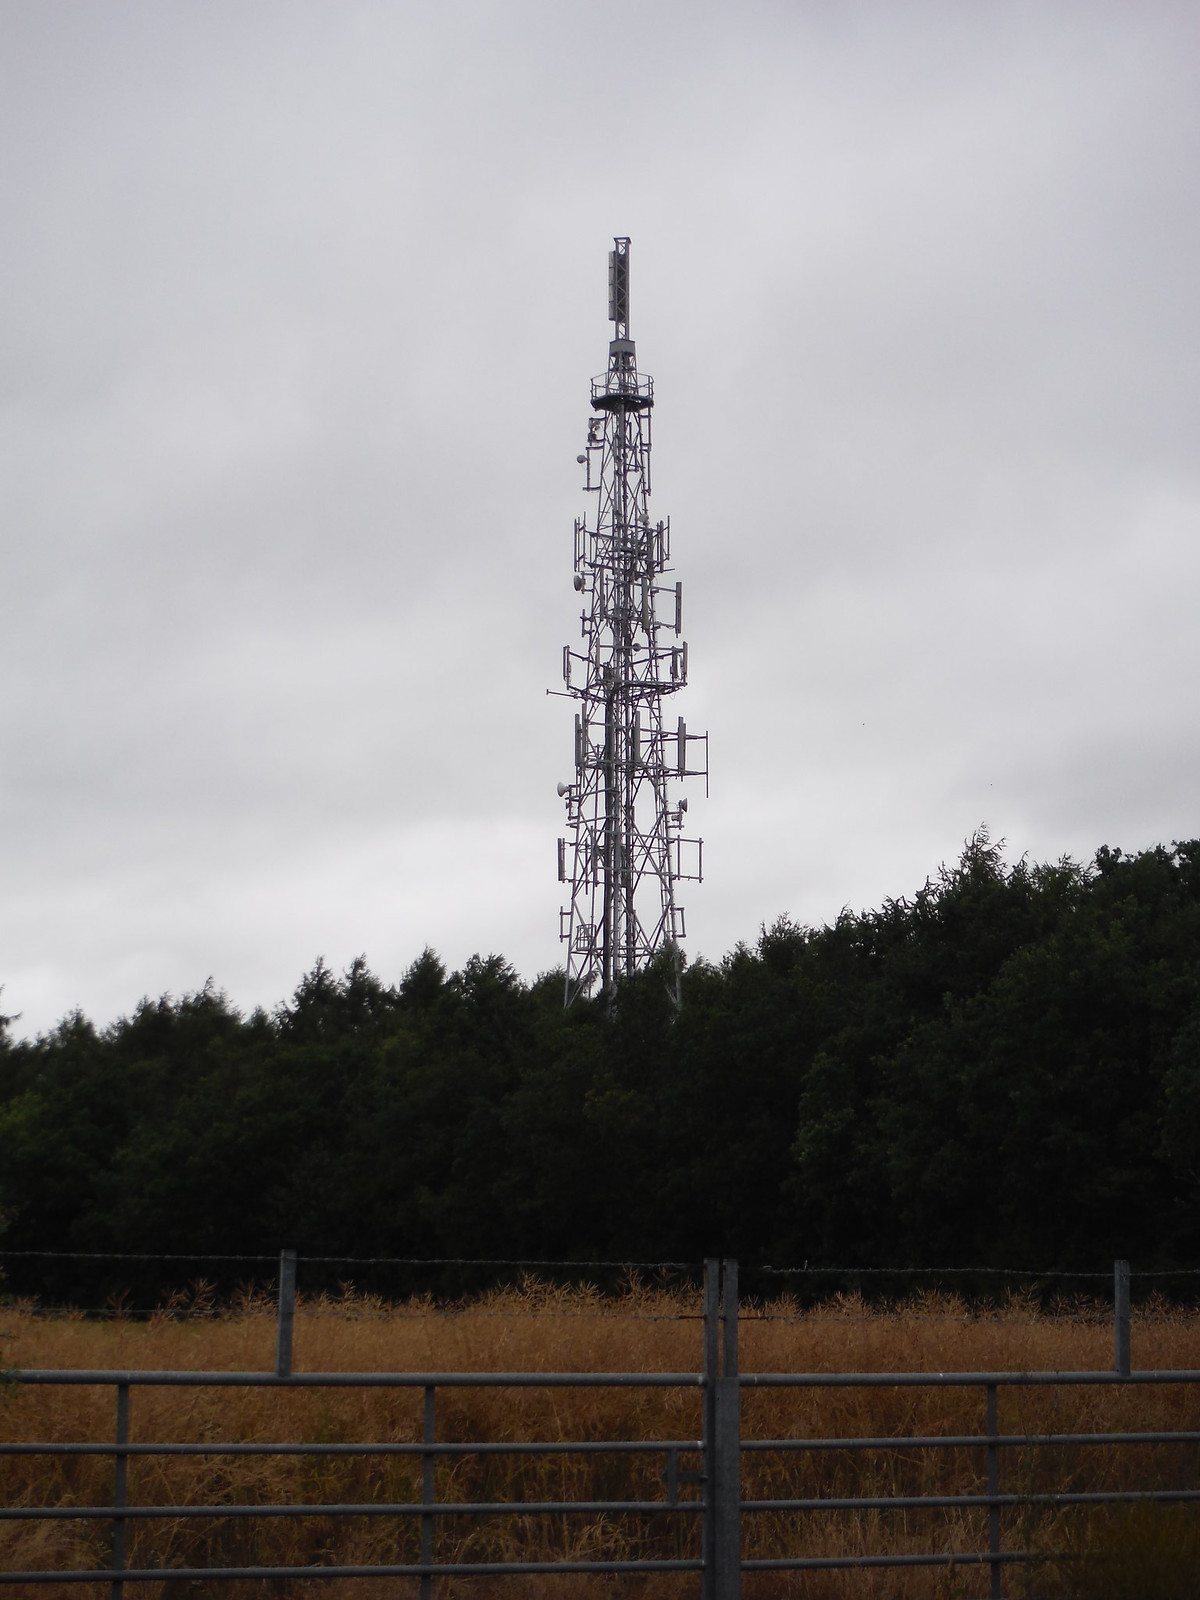 Transmission Mast SWC Walk 189 Beeches Way: West Drayton to Cookham